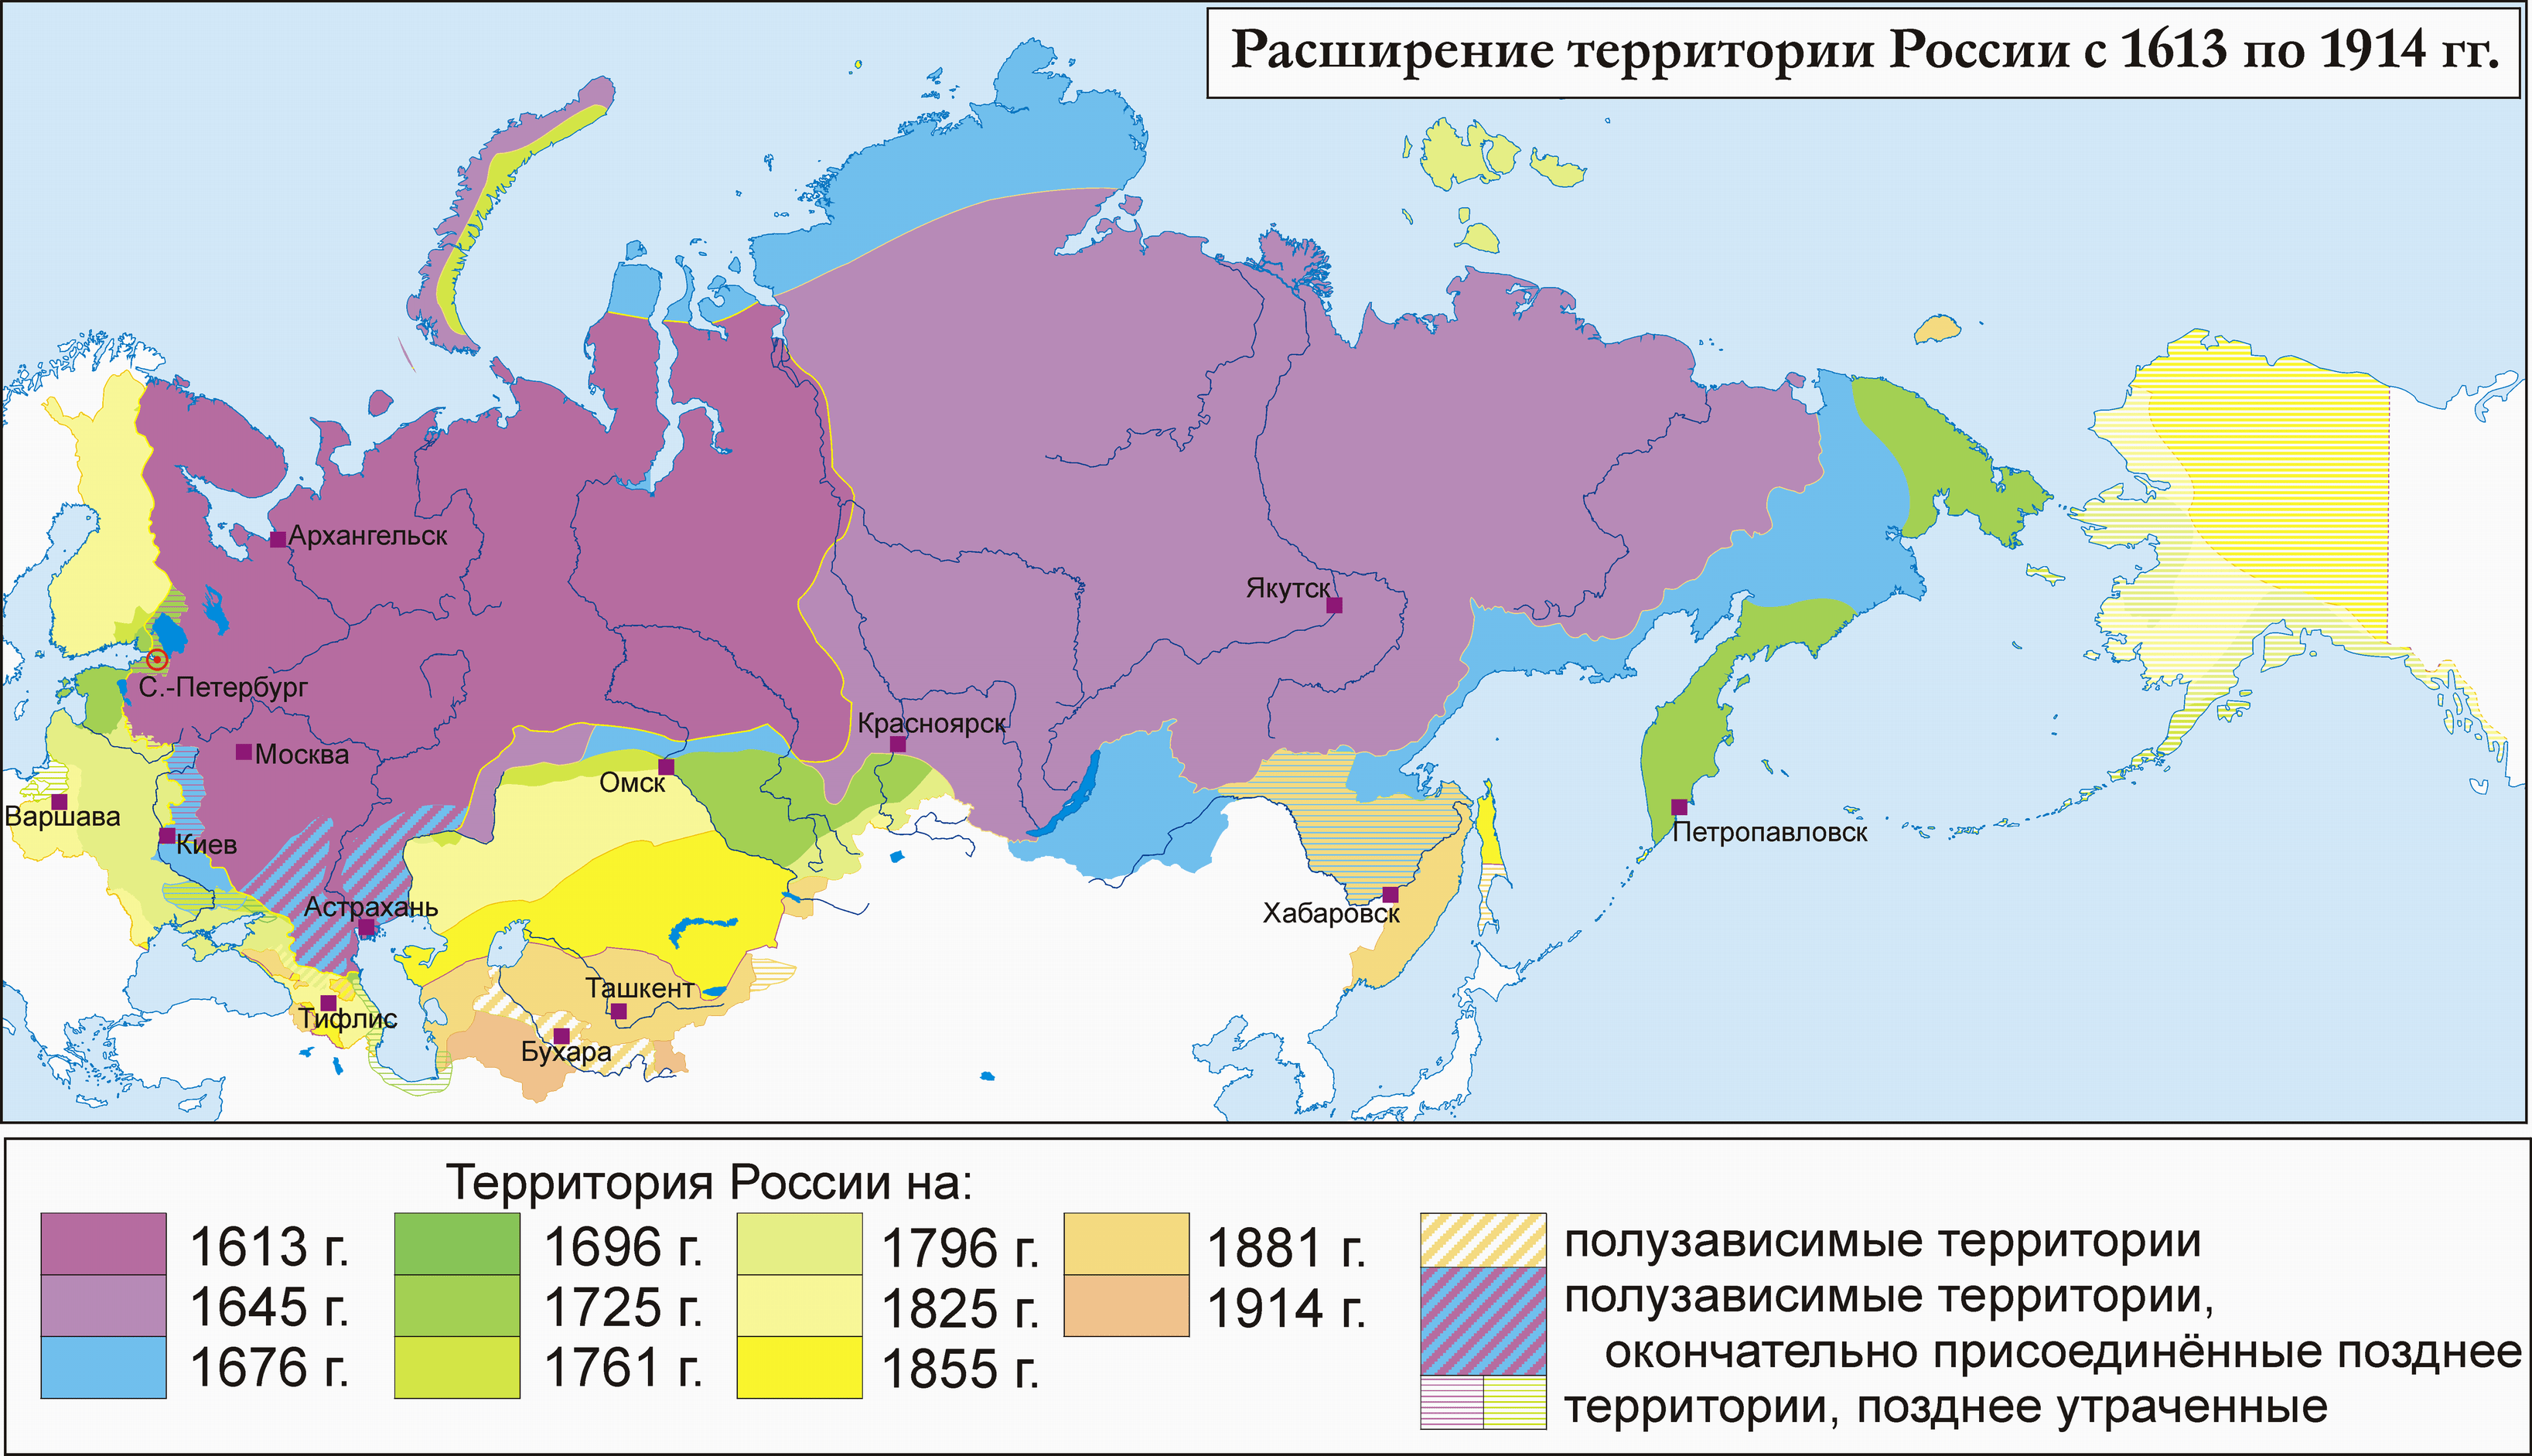 https://i0.wp.com/upload.wikimedia.org/wikipedia/commons/5/58/Growth_of_Russia_1613-1914.png